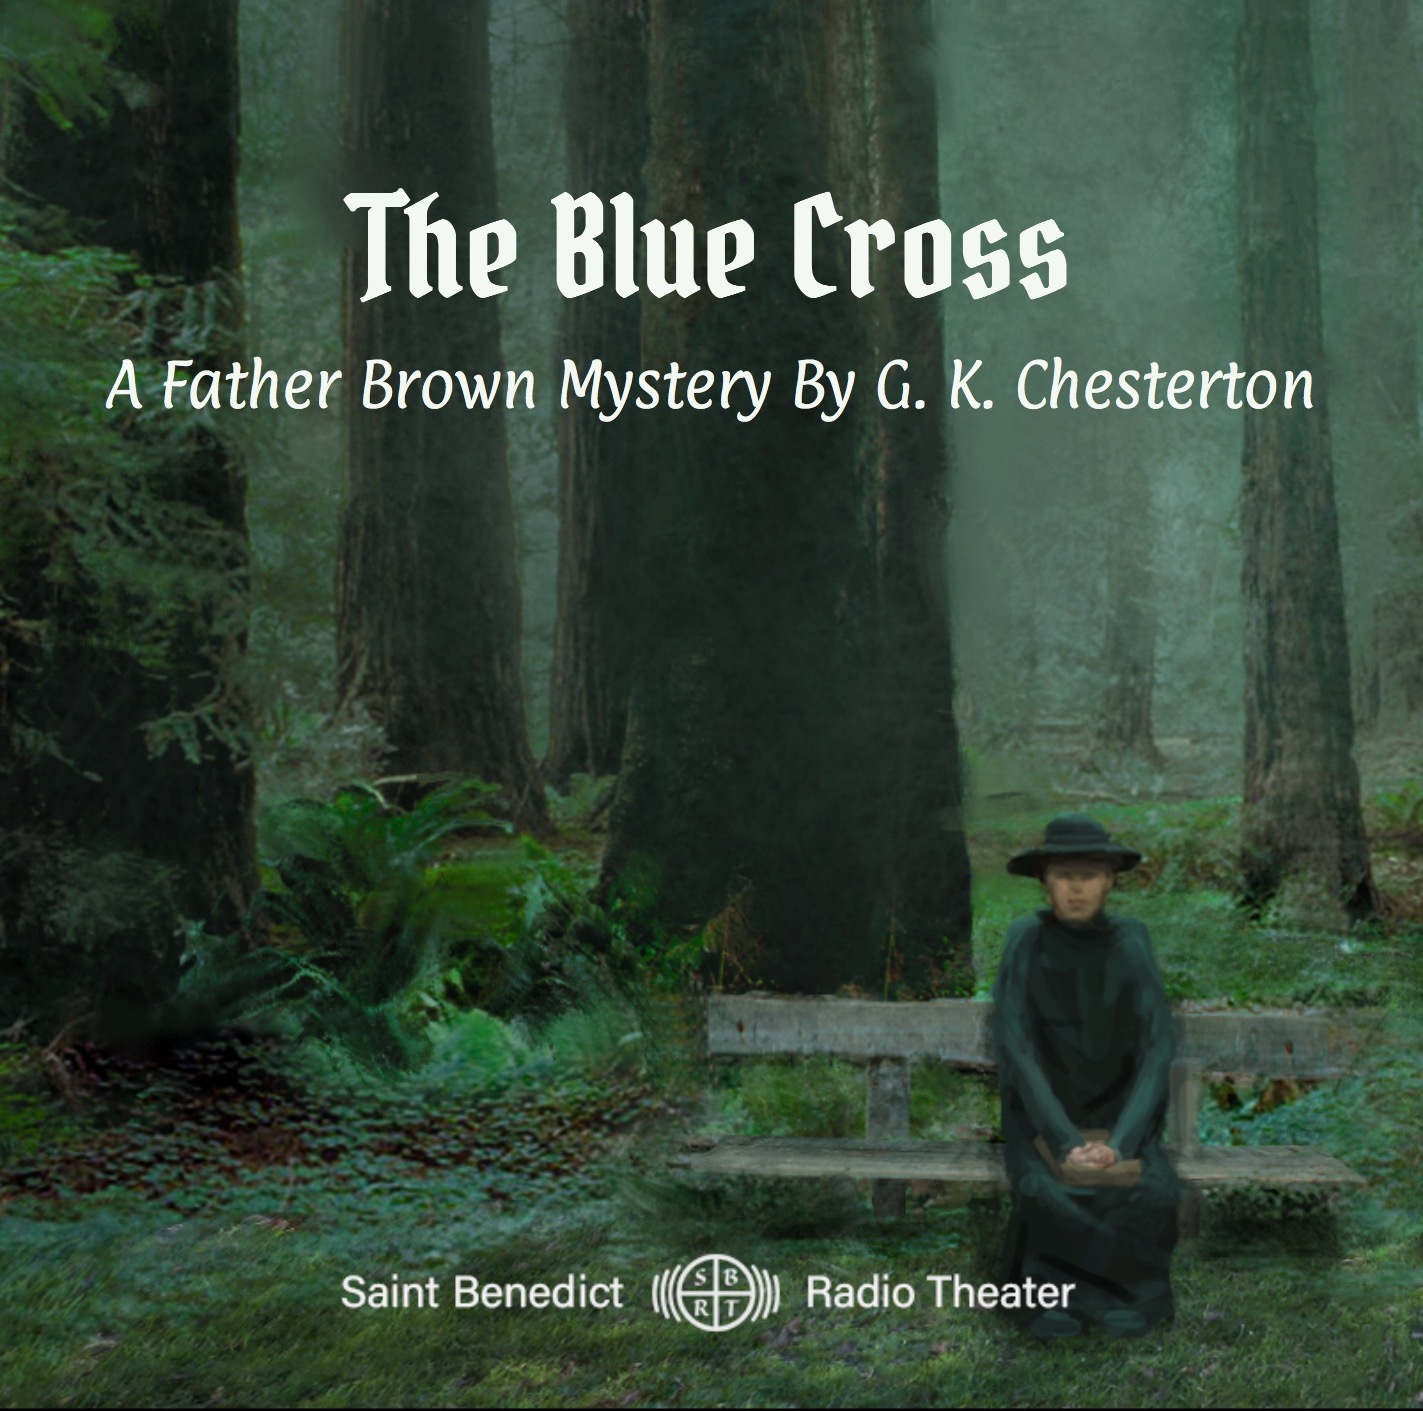 The Blue Cross: A Father Brown Mystery by G. K. Chesterton